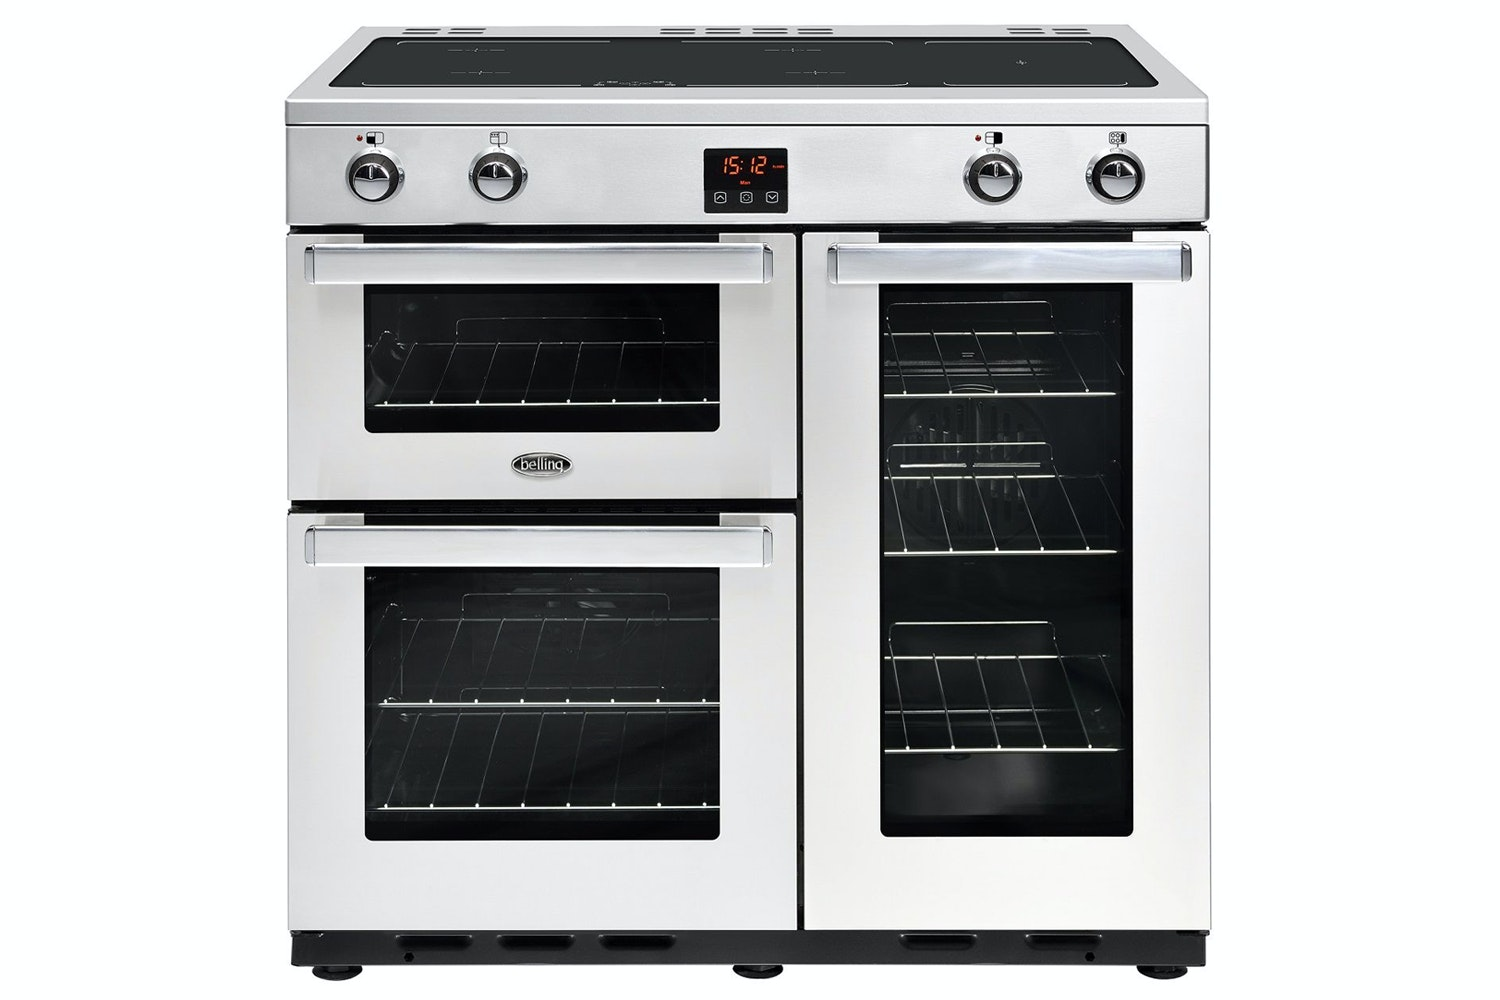 Belling Cookcenter 90cm Induction Range Cooker | 90EIPROFSTA | Stainless Steel